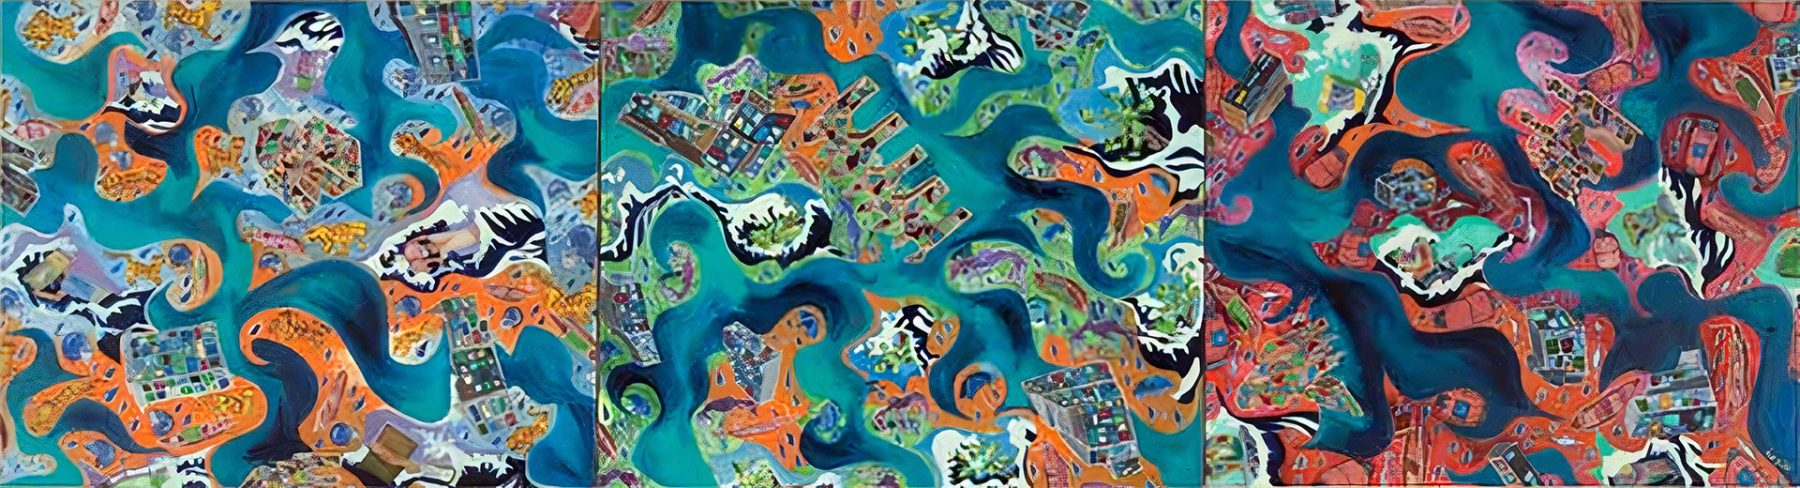 Dhaka Flood of 2004 (2006) oil on canvas (3-panels) 0.61H x 2.29W meters